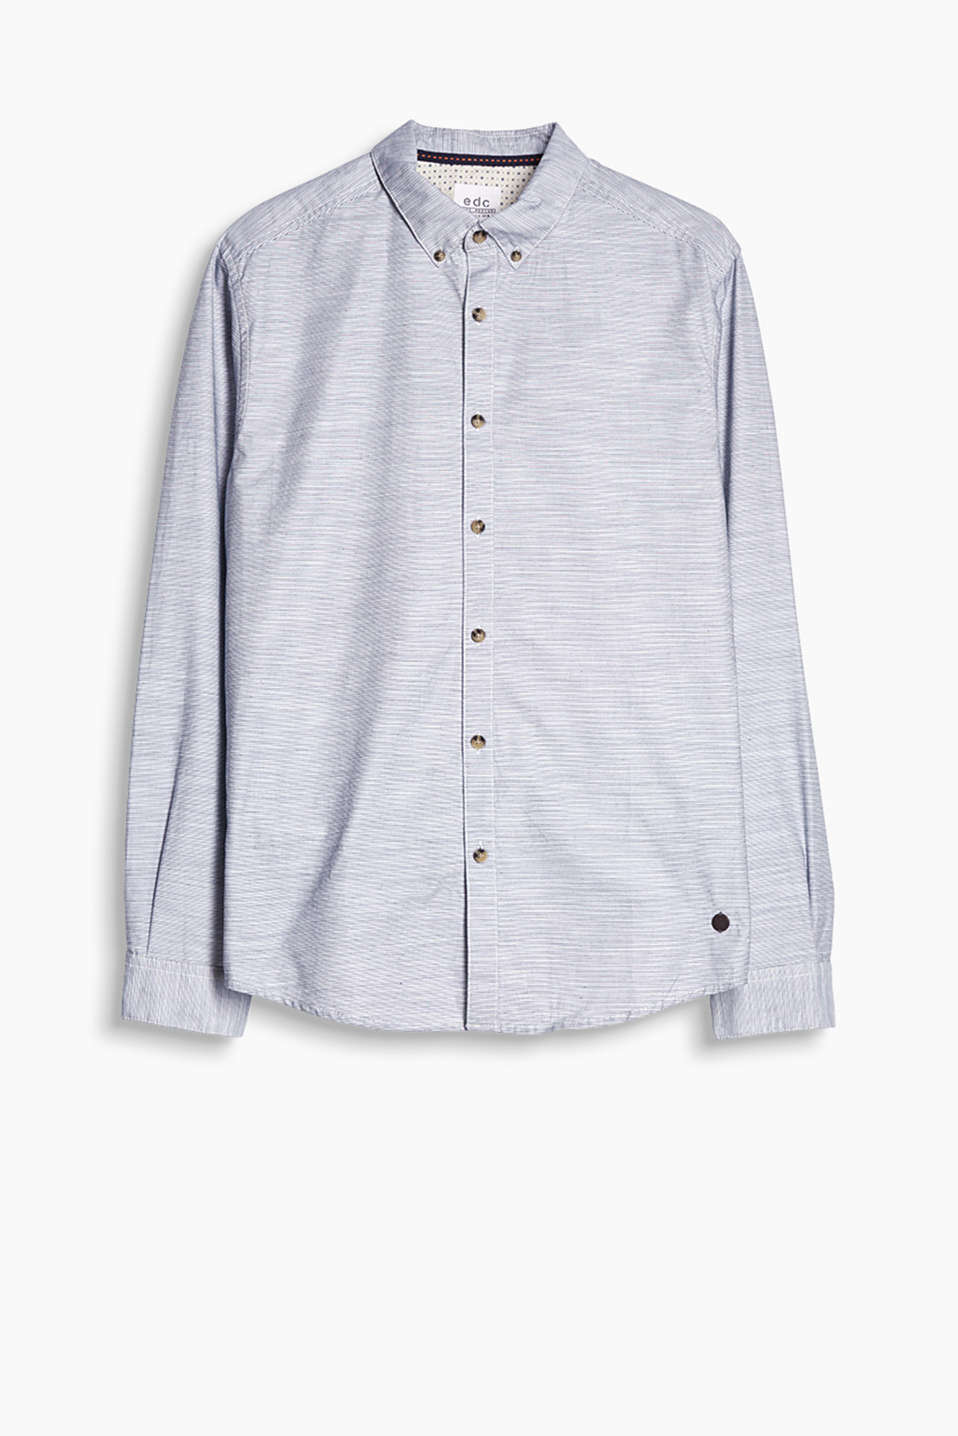 Shirt with a fine stripe pattern and a button-down collar